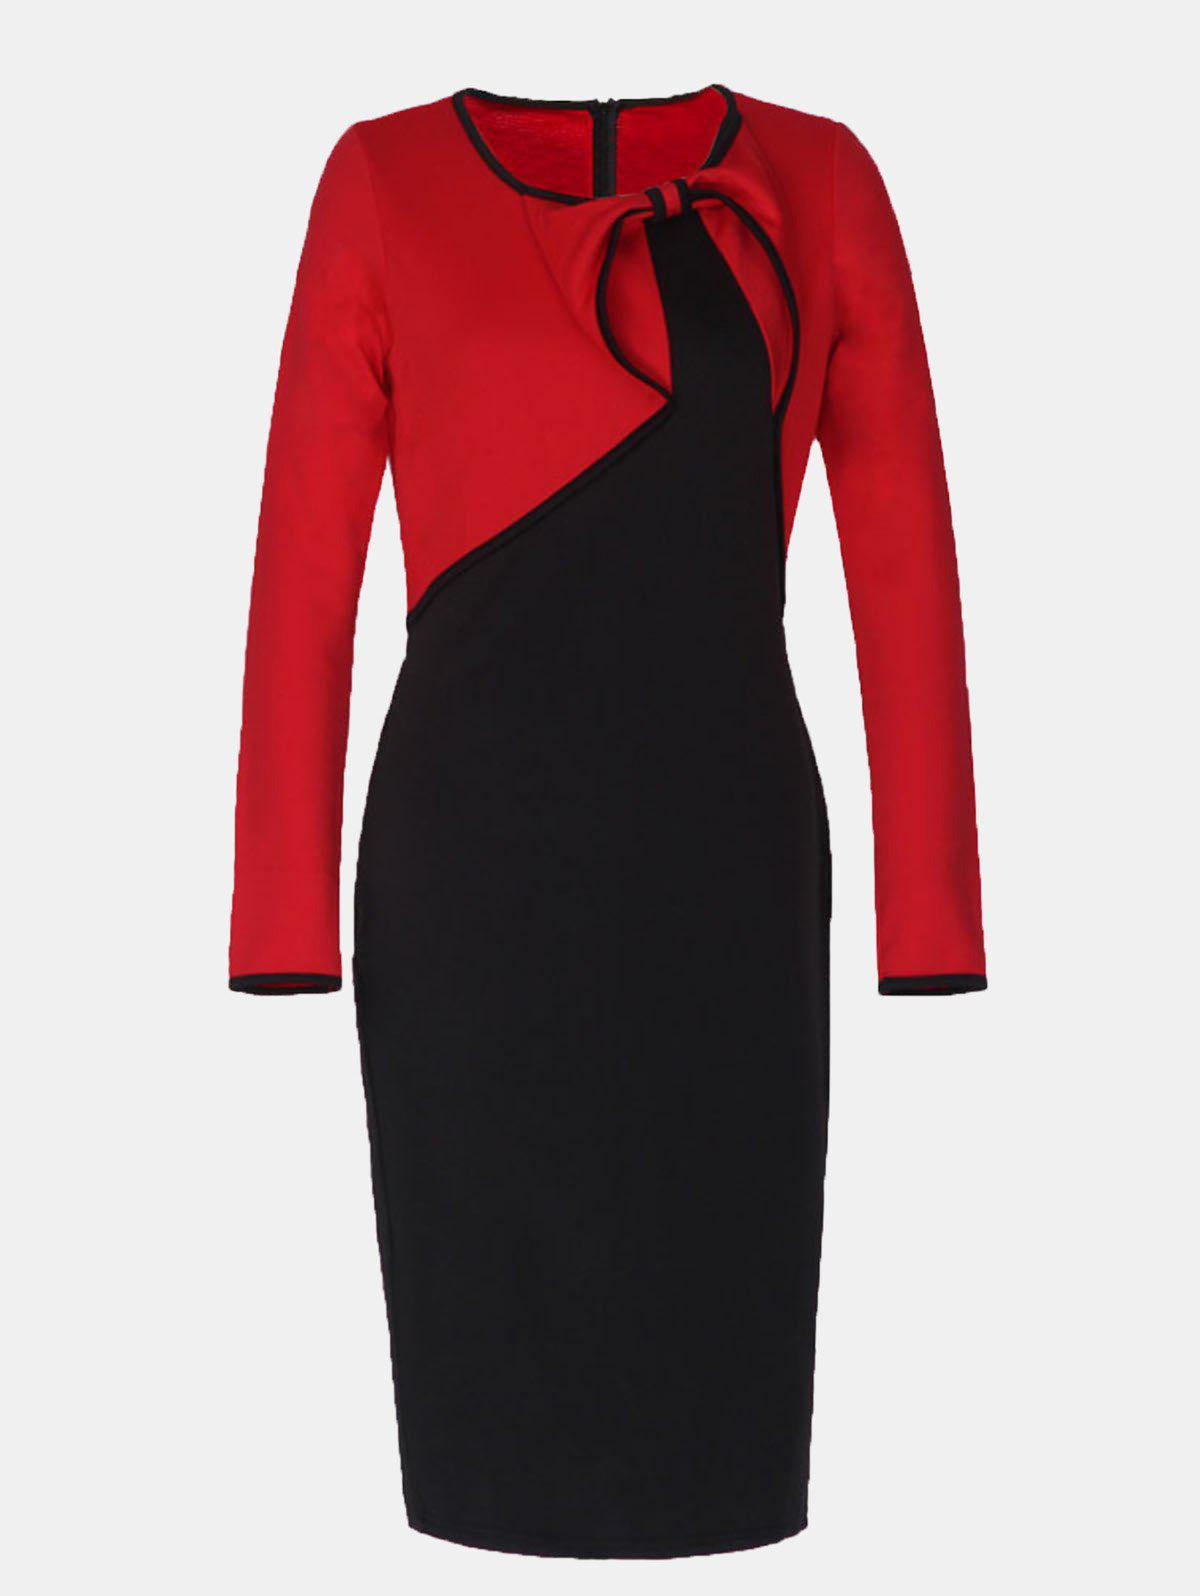 Vintage Fake Two Piece Round Collar Long Sleeve Pencil Dress - RED XL